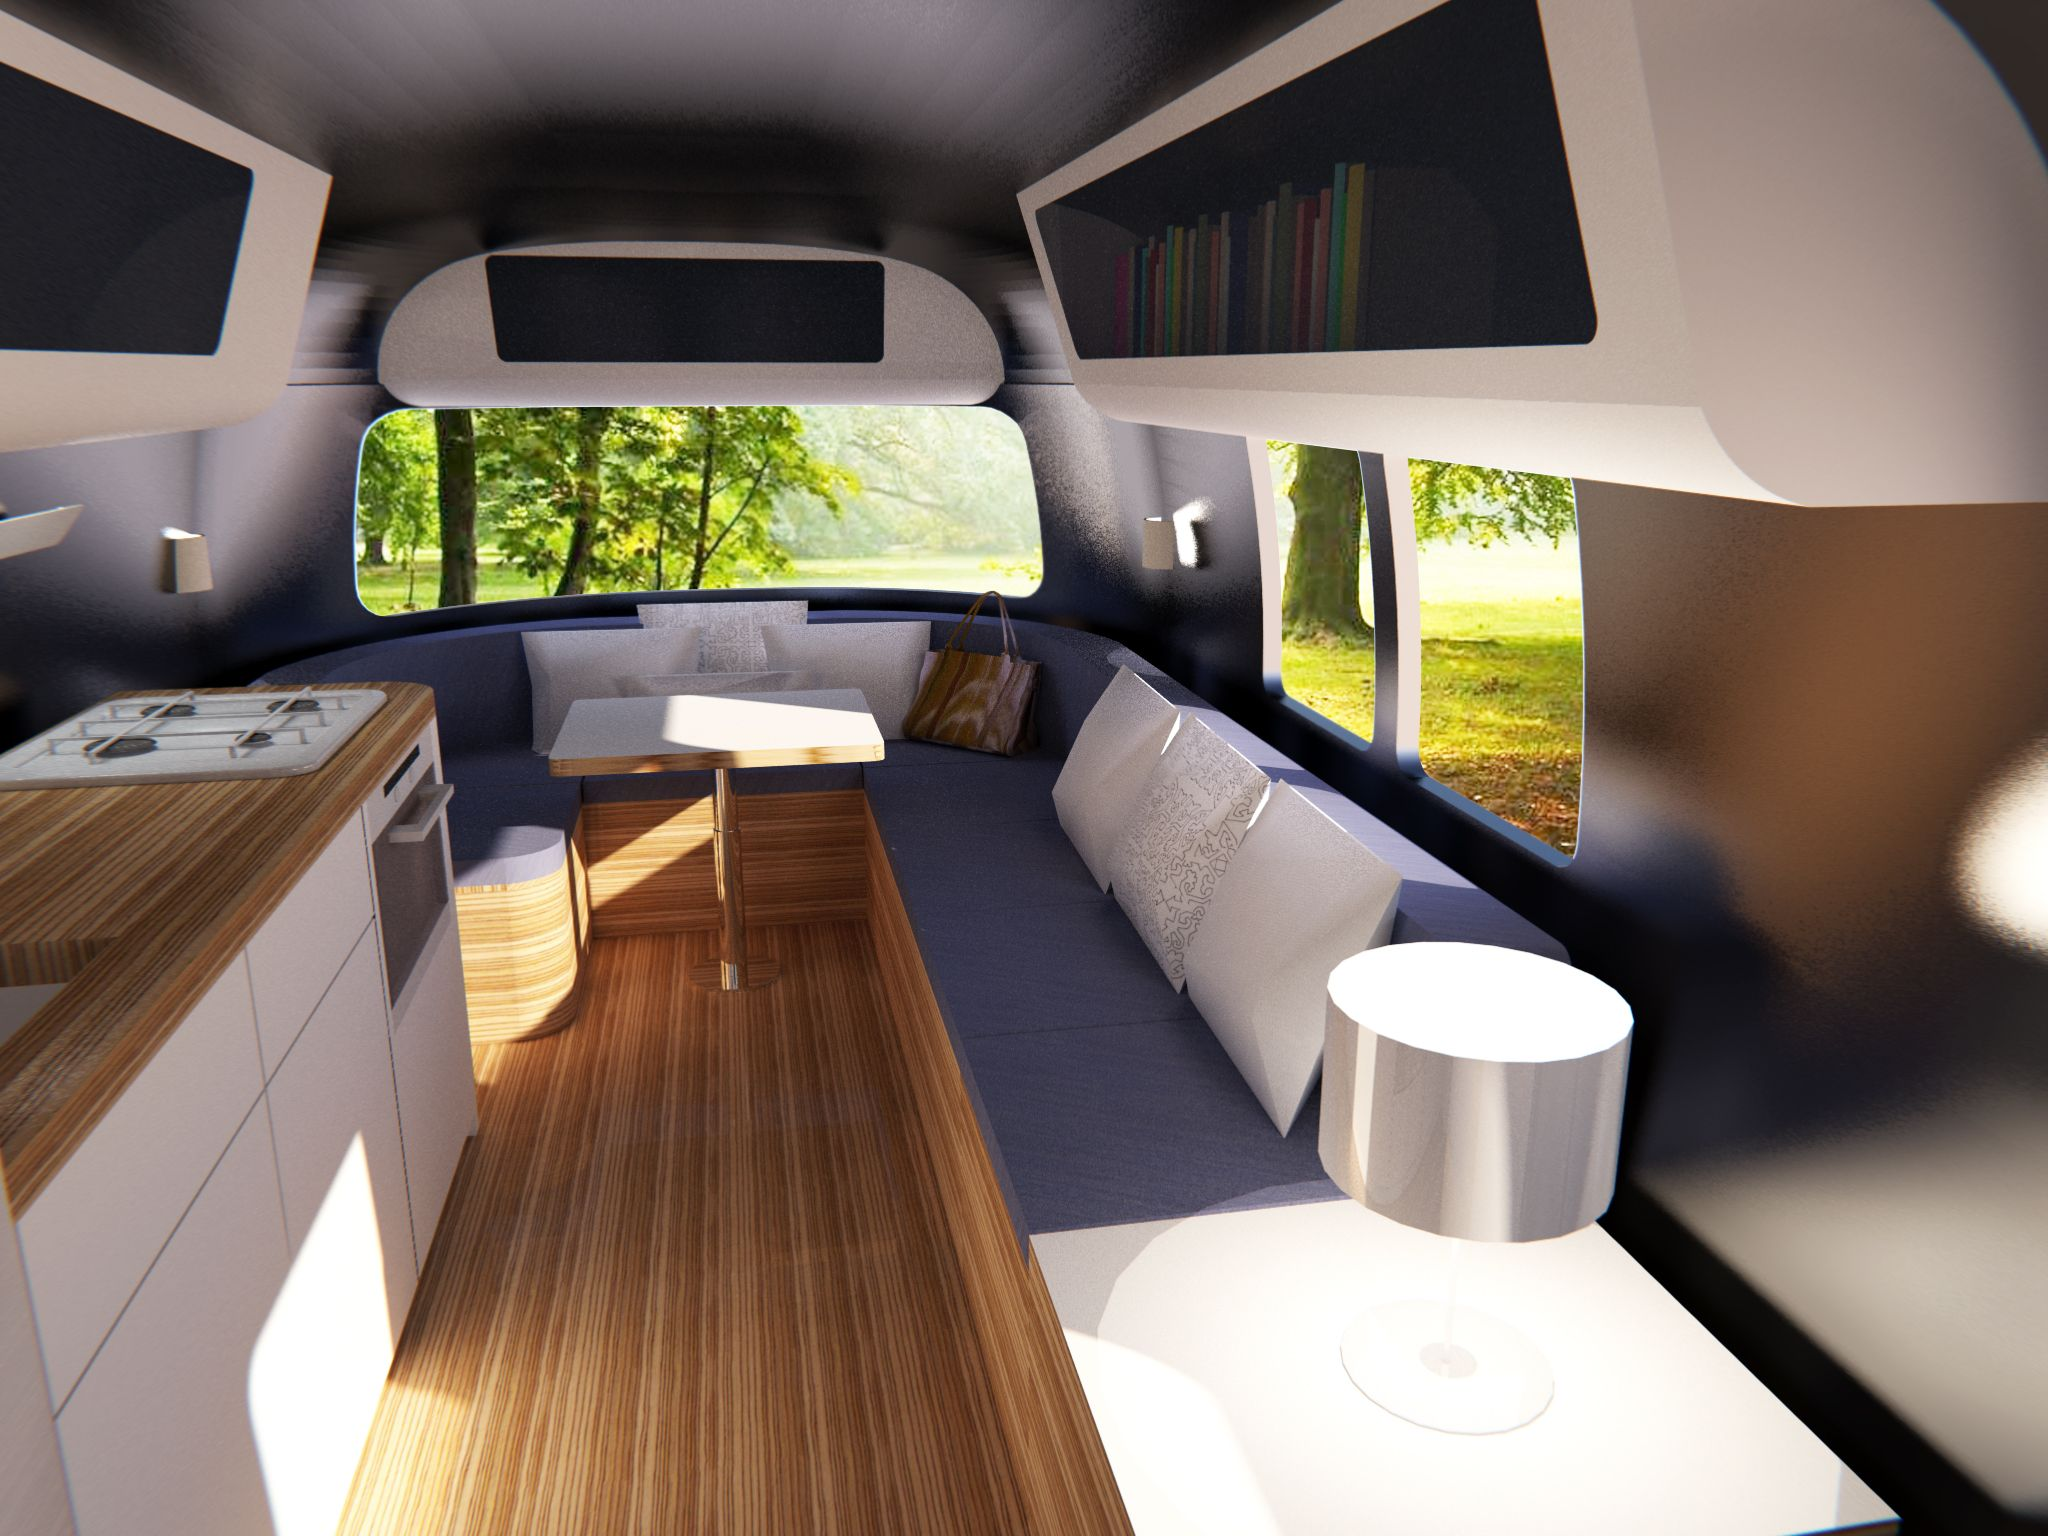 Caravane Decoration Interieur Caravan Modern Living Google Search Compact Living